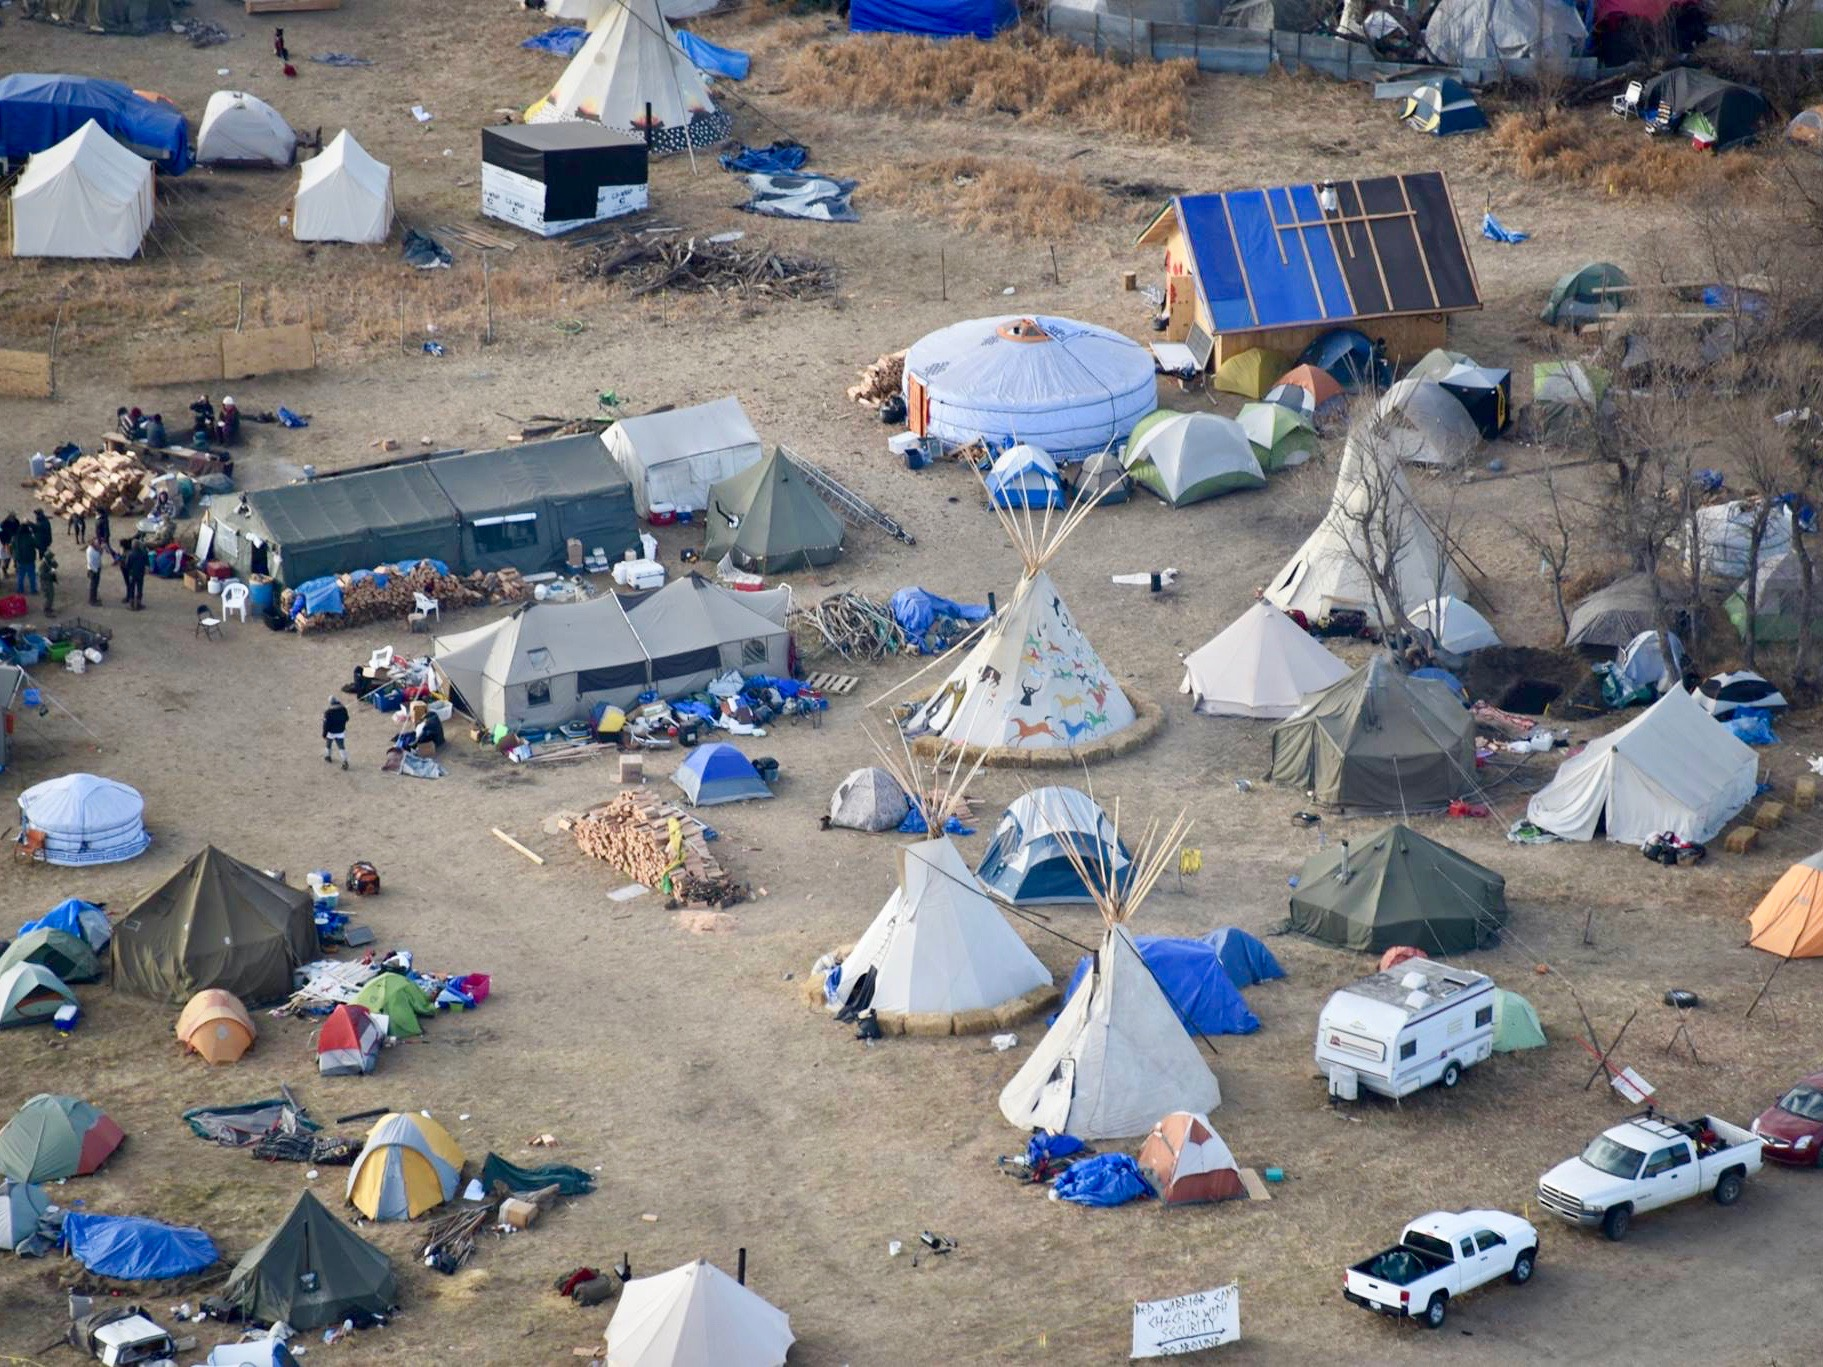 Army Corps changes course and closes land to #NoDAPL encampment